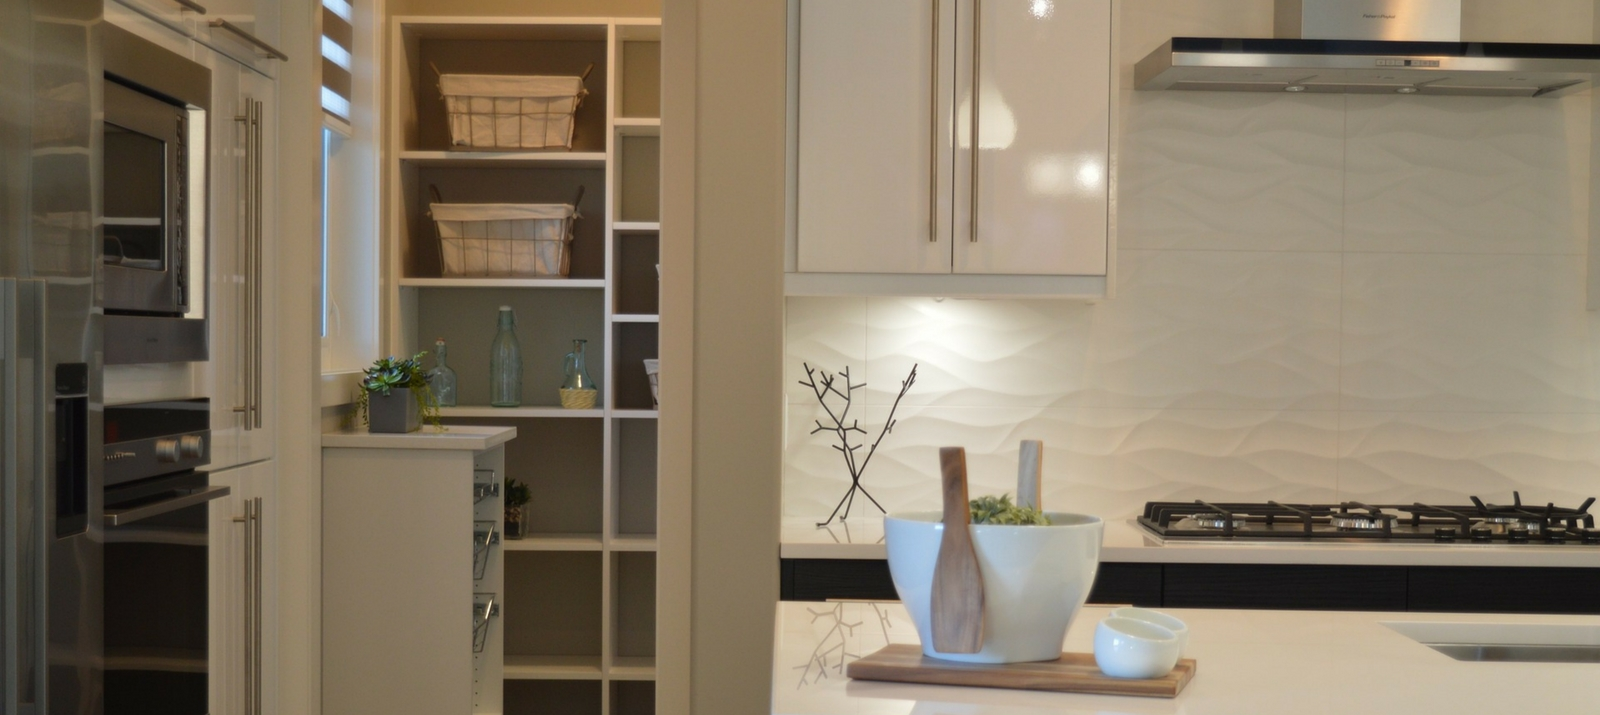 Modular Kitchen Upper Cabinets 12 Stellar Ways To Organize Your Kitchen Cabinets Drawers Pantry